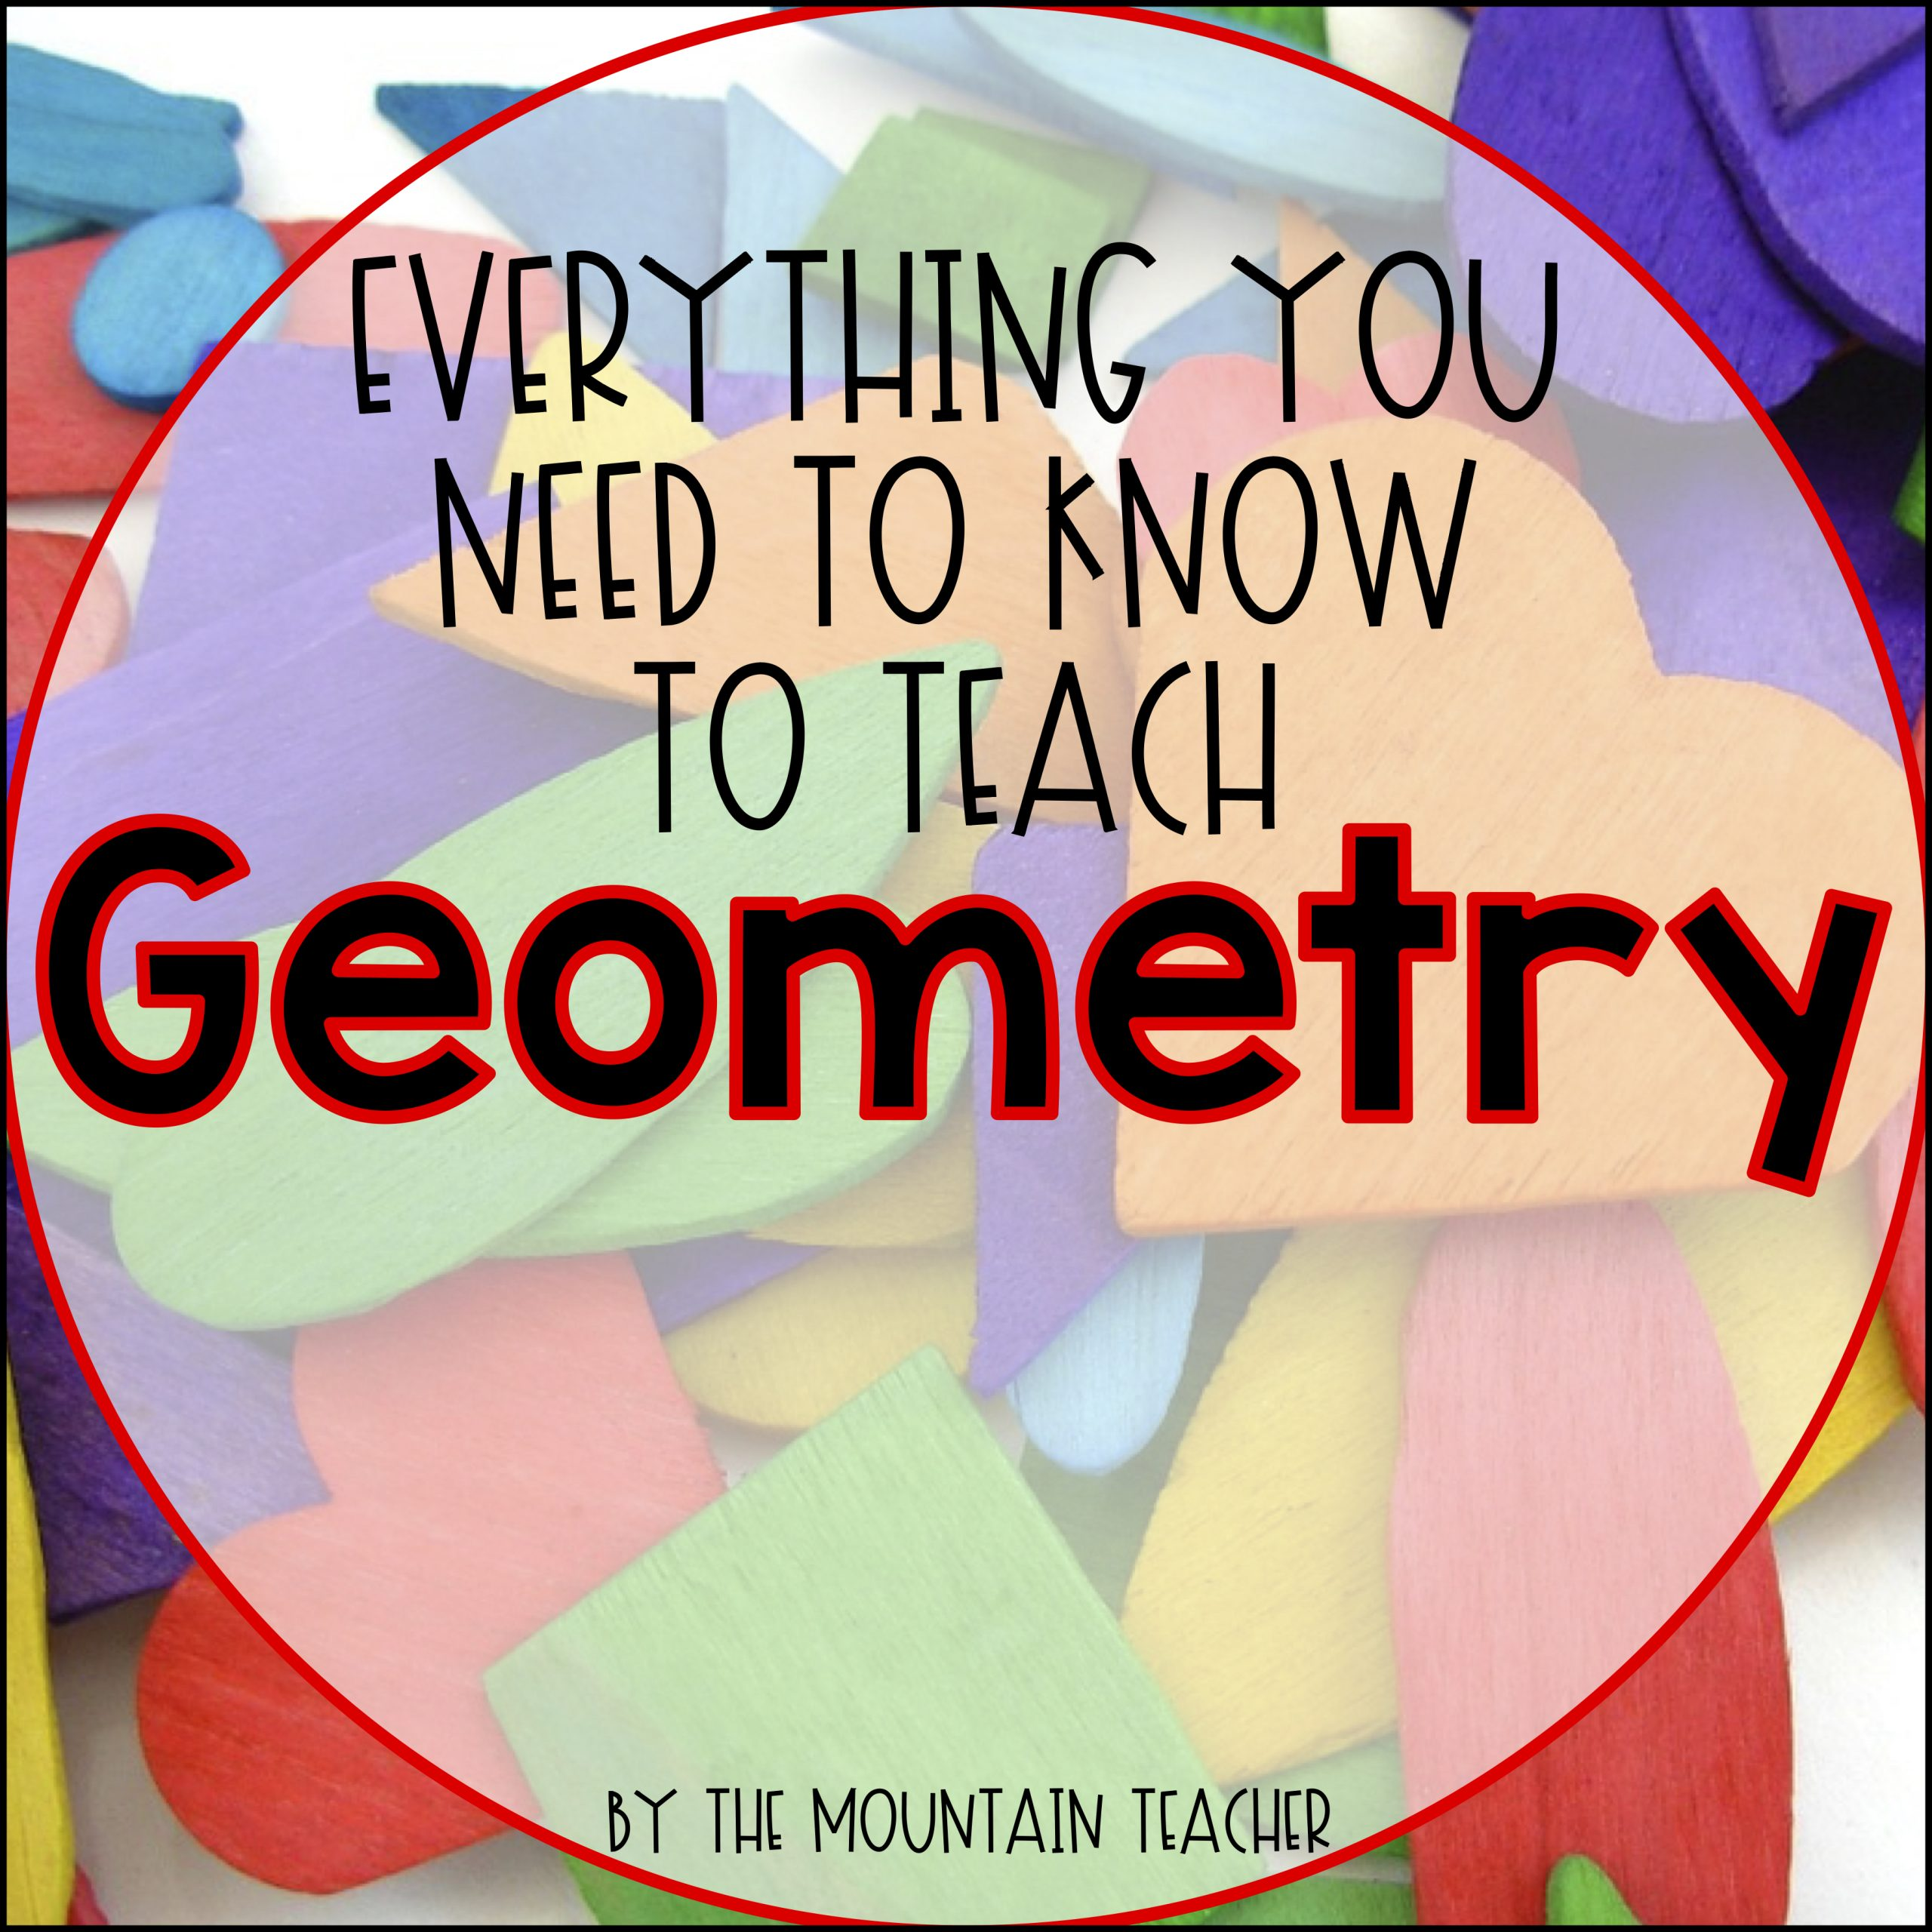 Everything you need to know to teach geometry to second grade students.